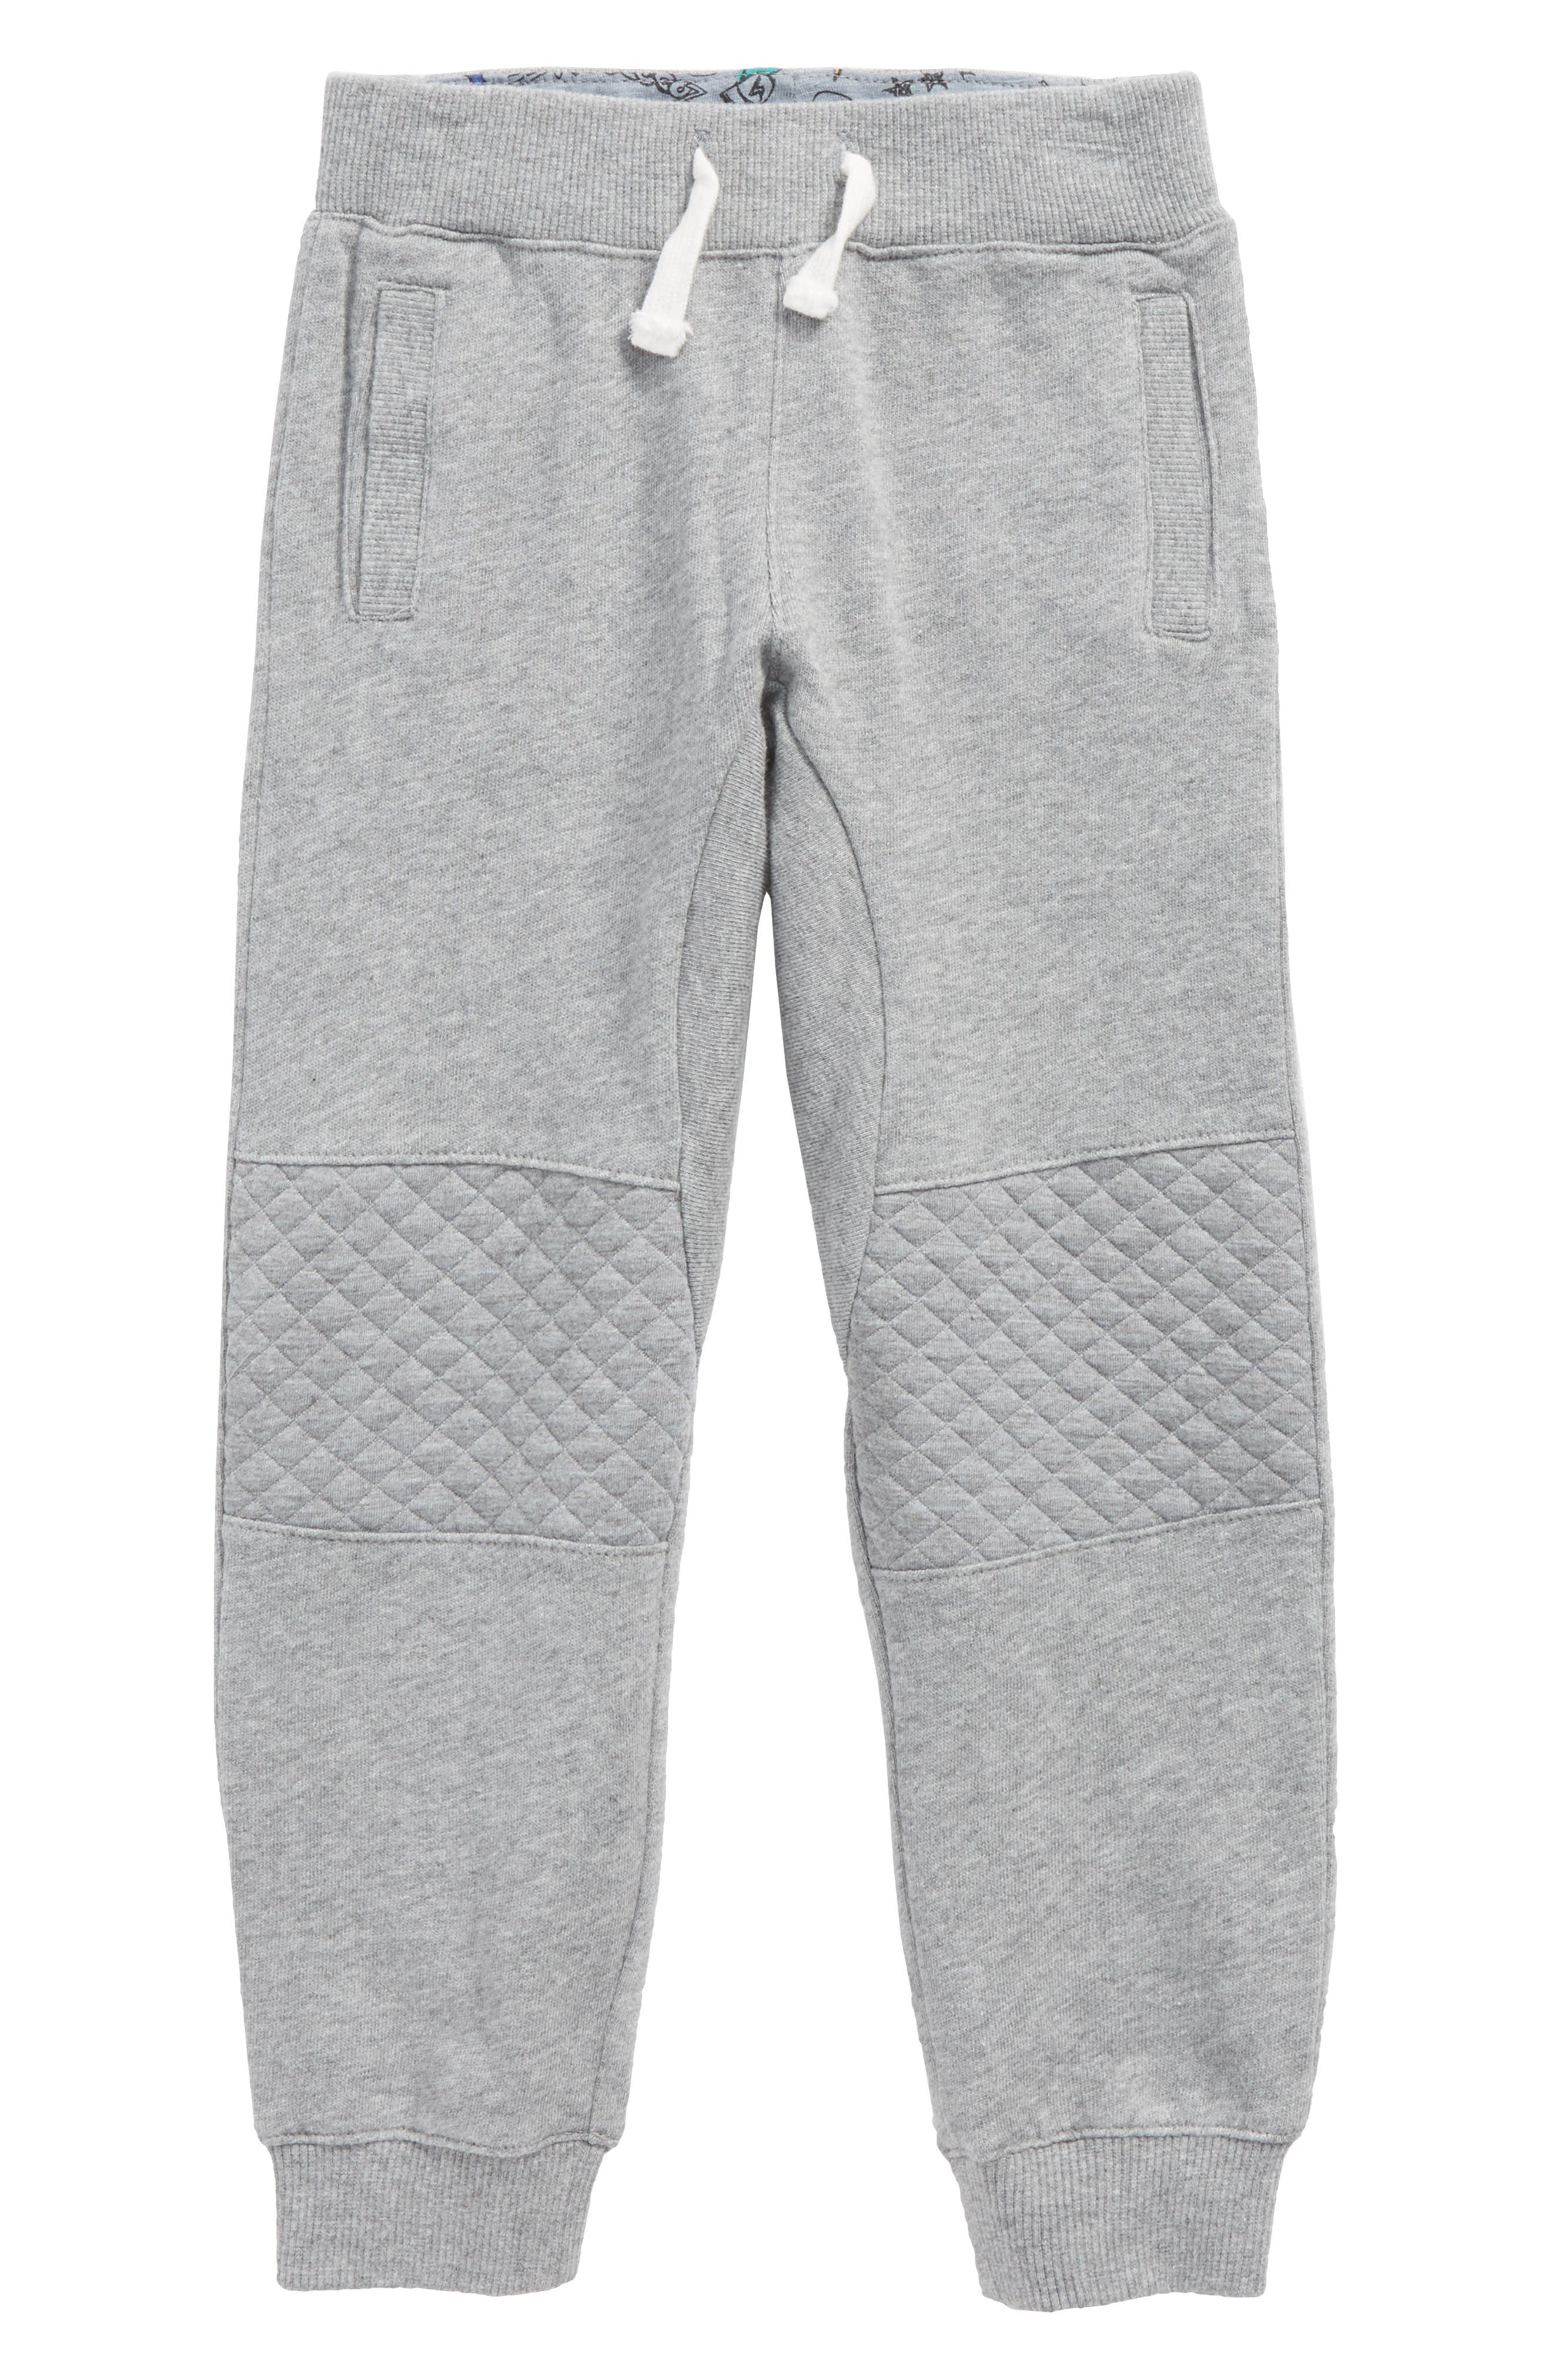 Quilted French Terry Jogger Pants,                             Main thumbnail 1, color,                             031